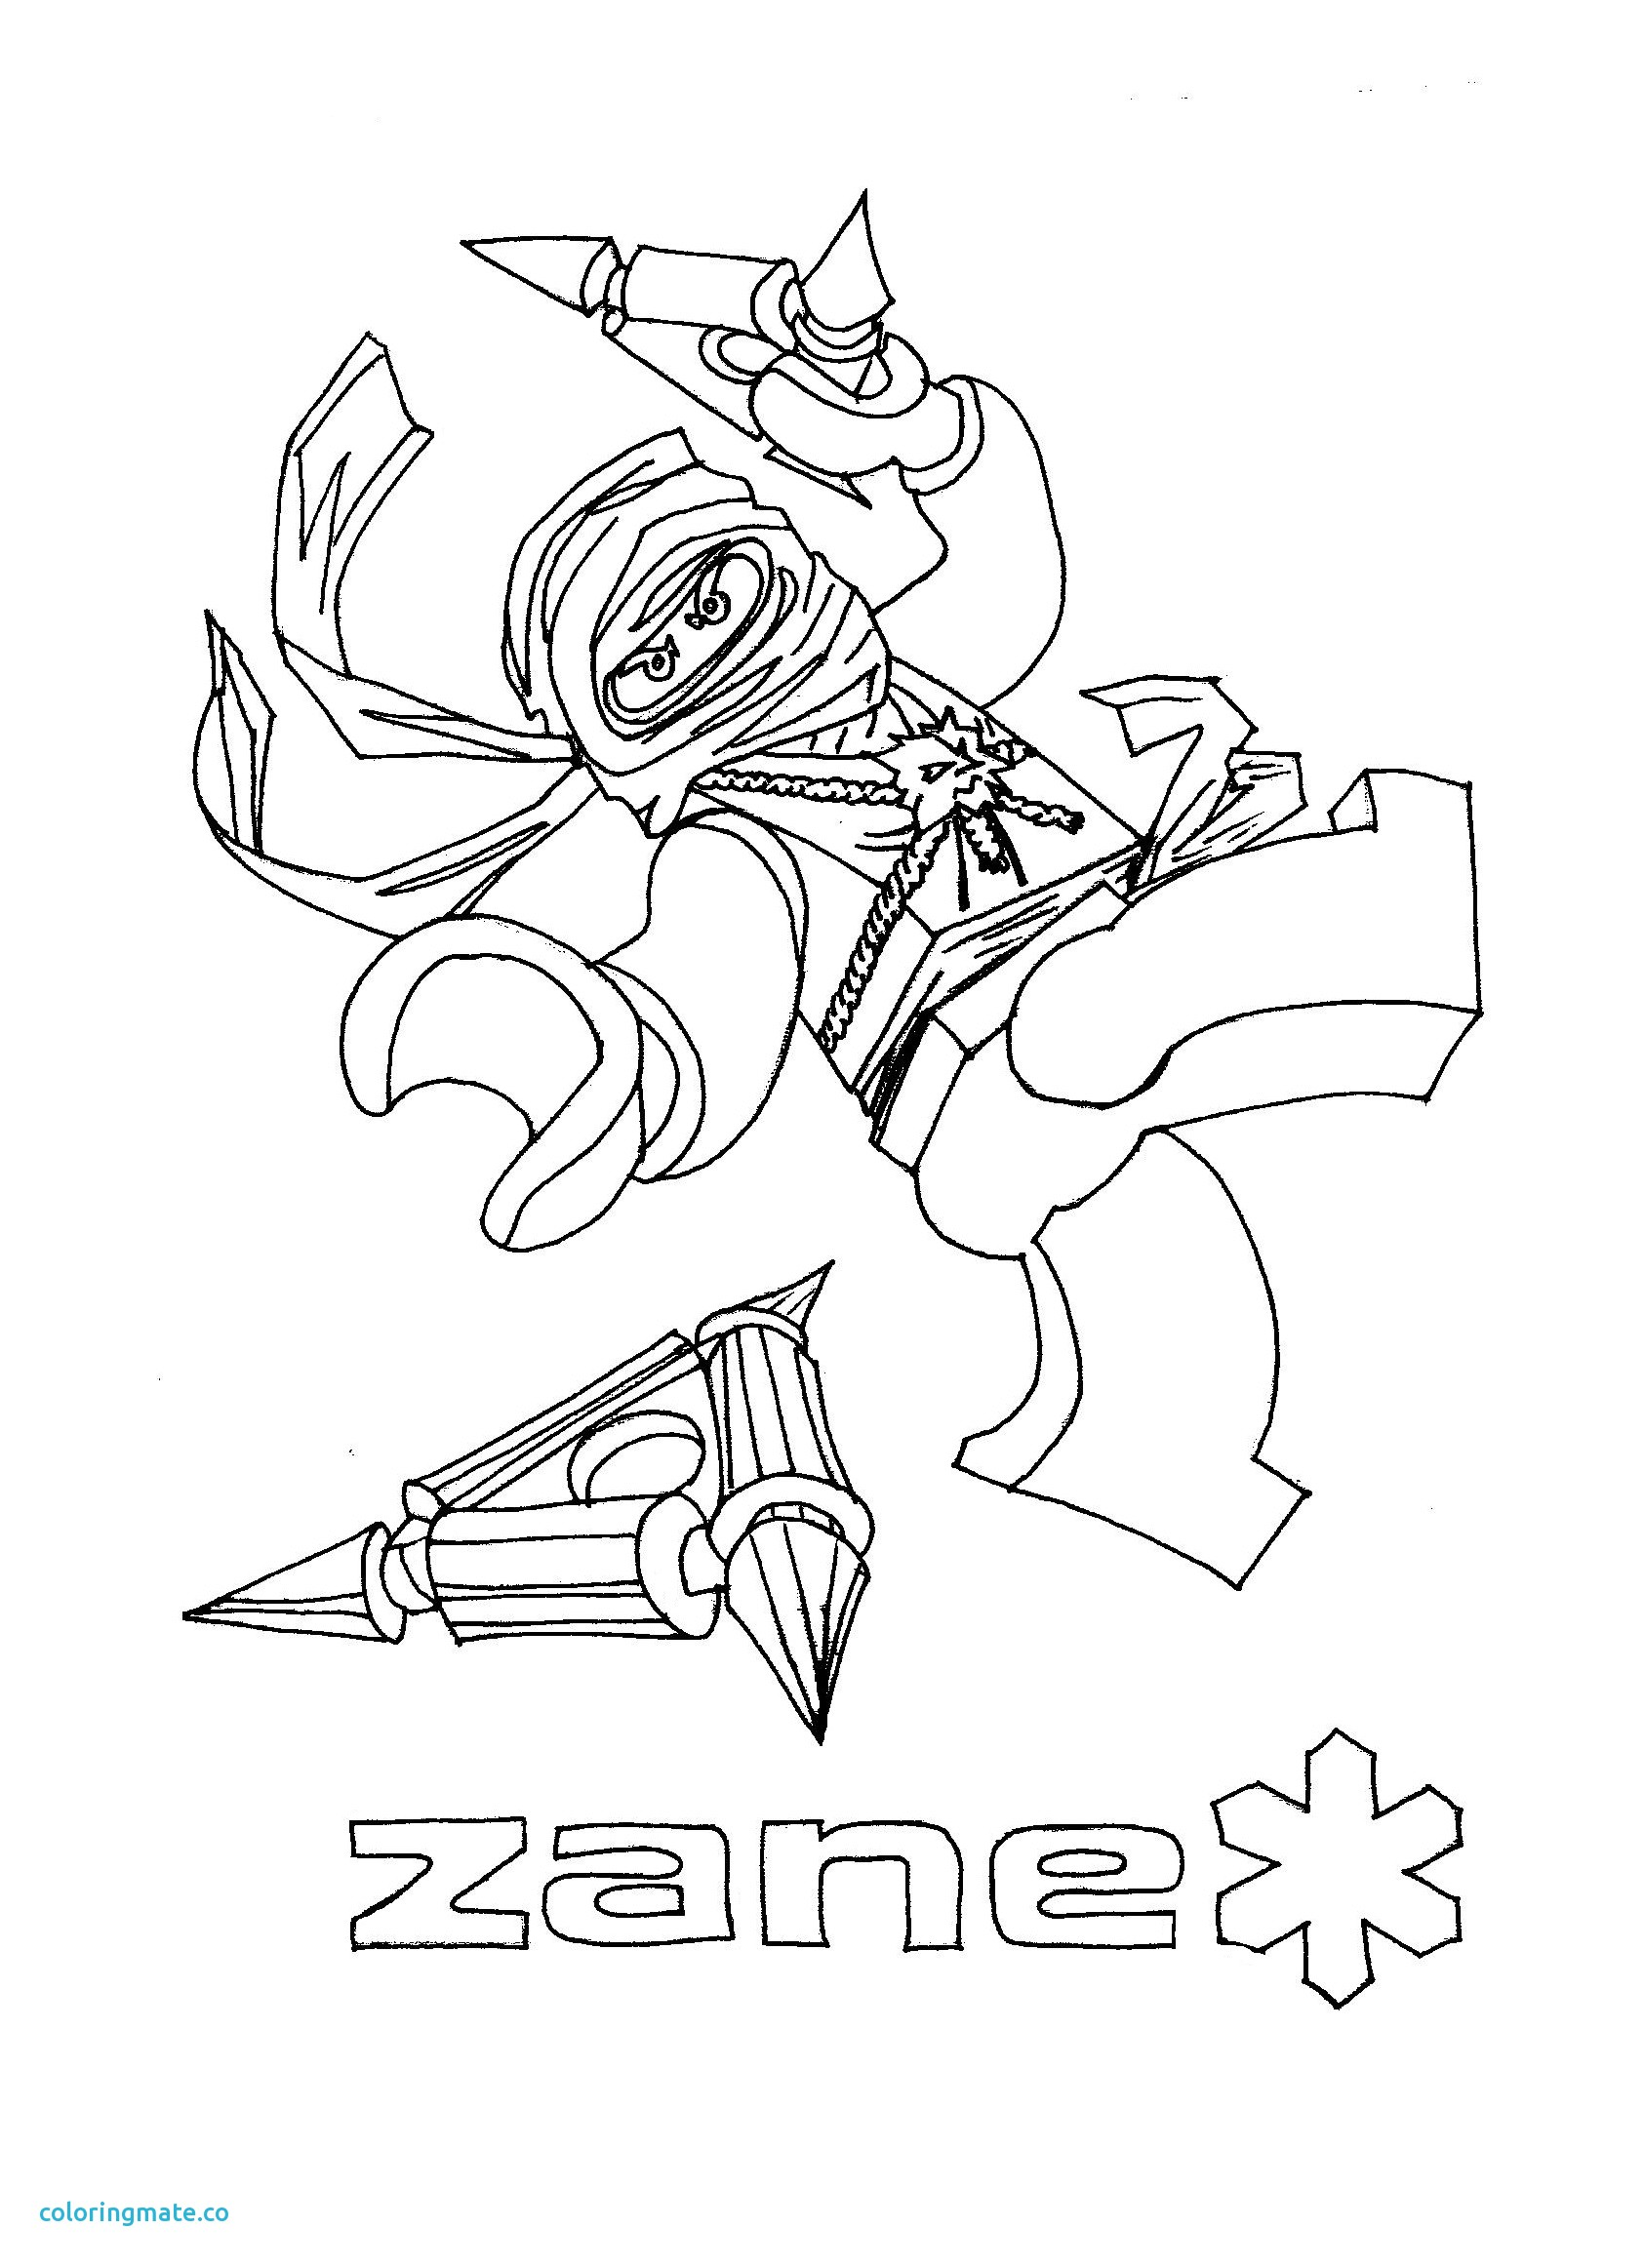 Ninjago Drawing Zane At Getdrawings Com Free For Personal Use